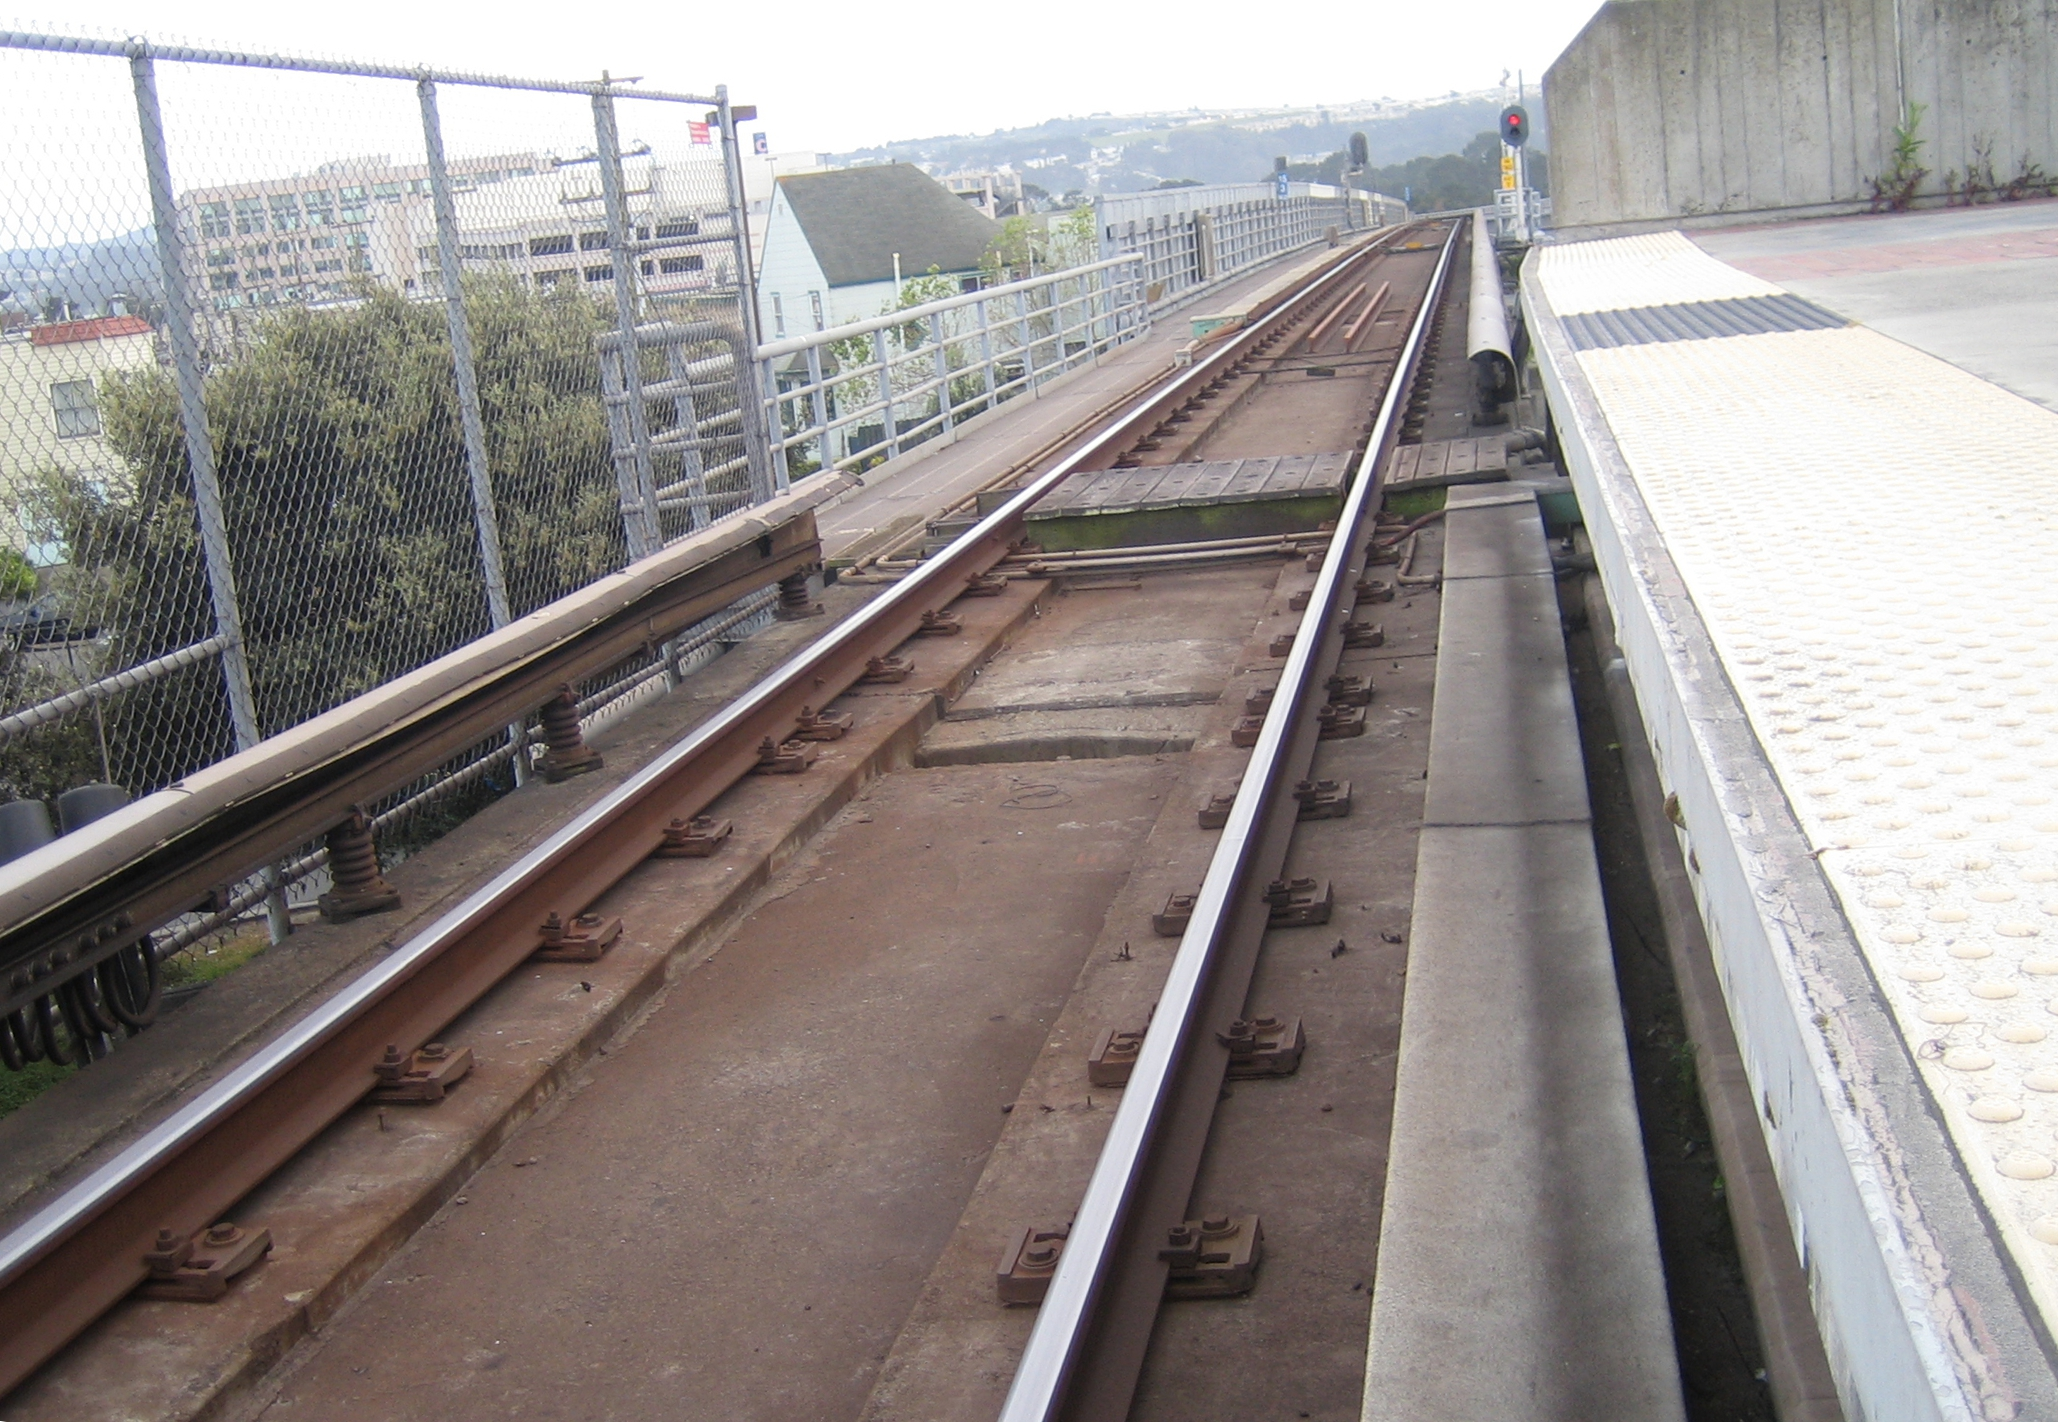 The location of the BART's third rail changes relative to the train when it enters the station and meets the walkway crossing the trackway. On the left side of the trackway in the distance is the emergency walkway for the aerial trackway leading into the station the third rail is positioned opposite this walkway.